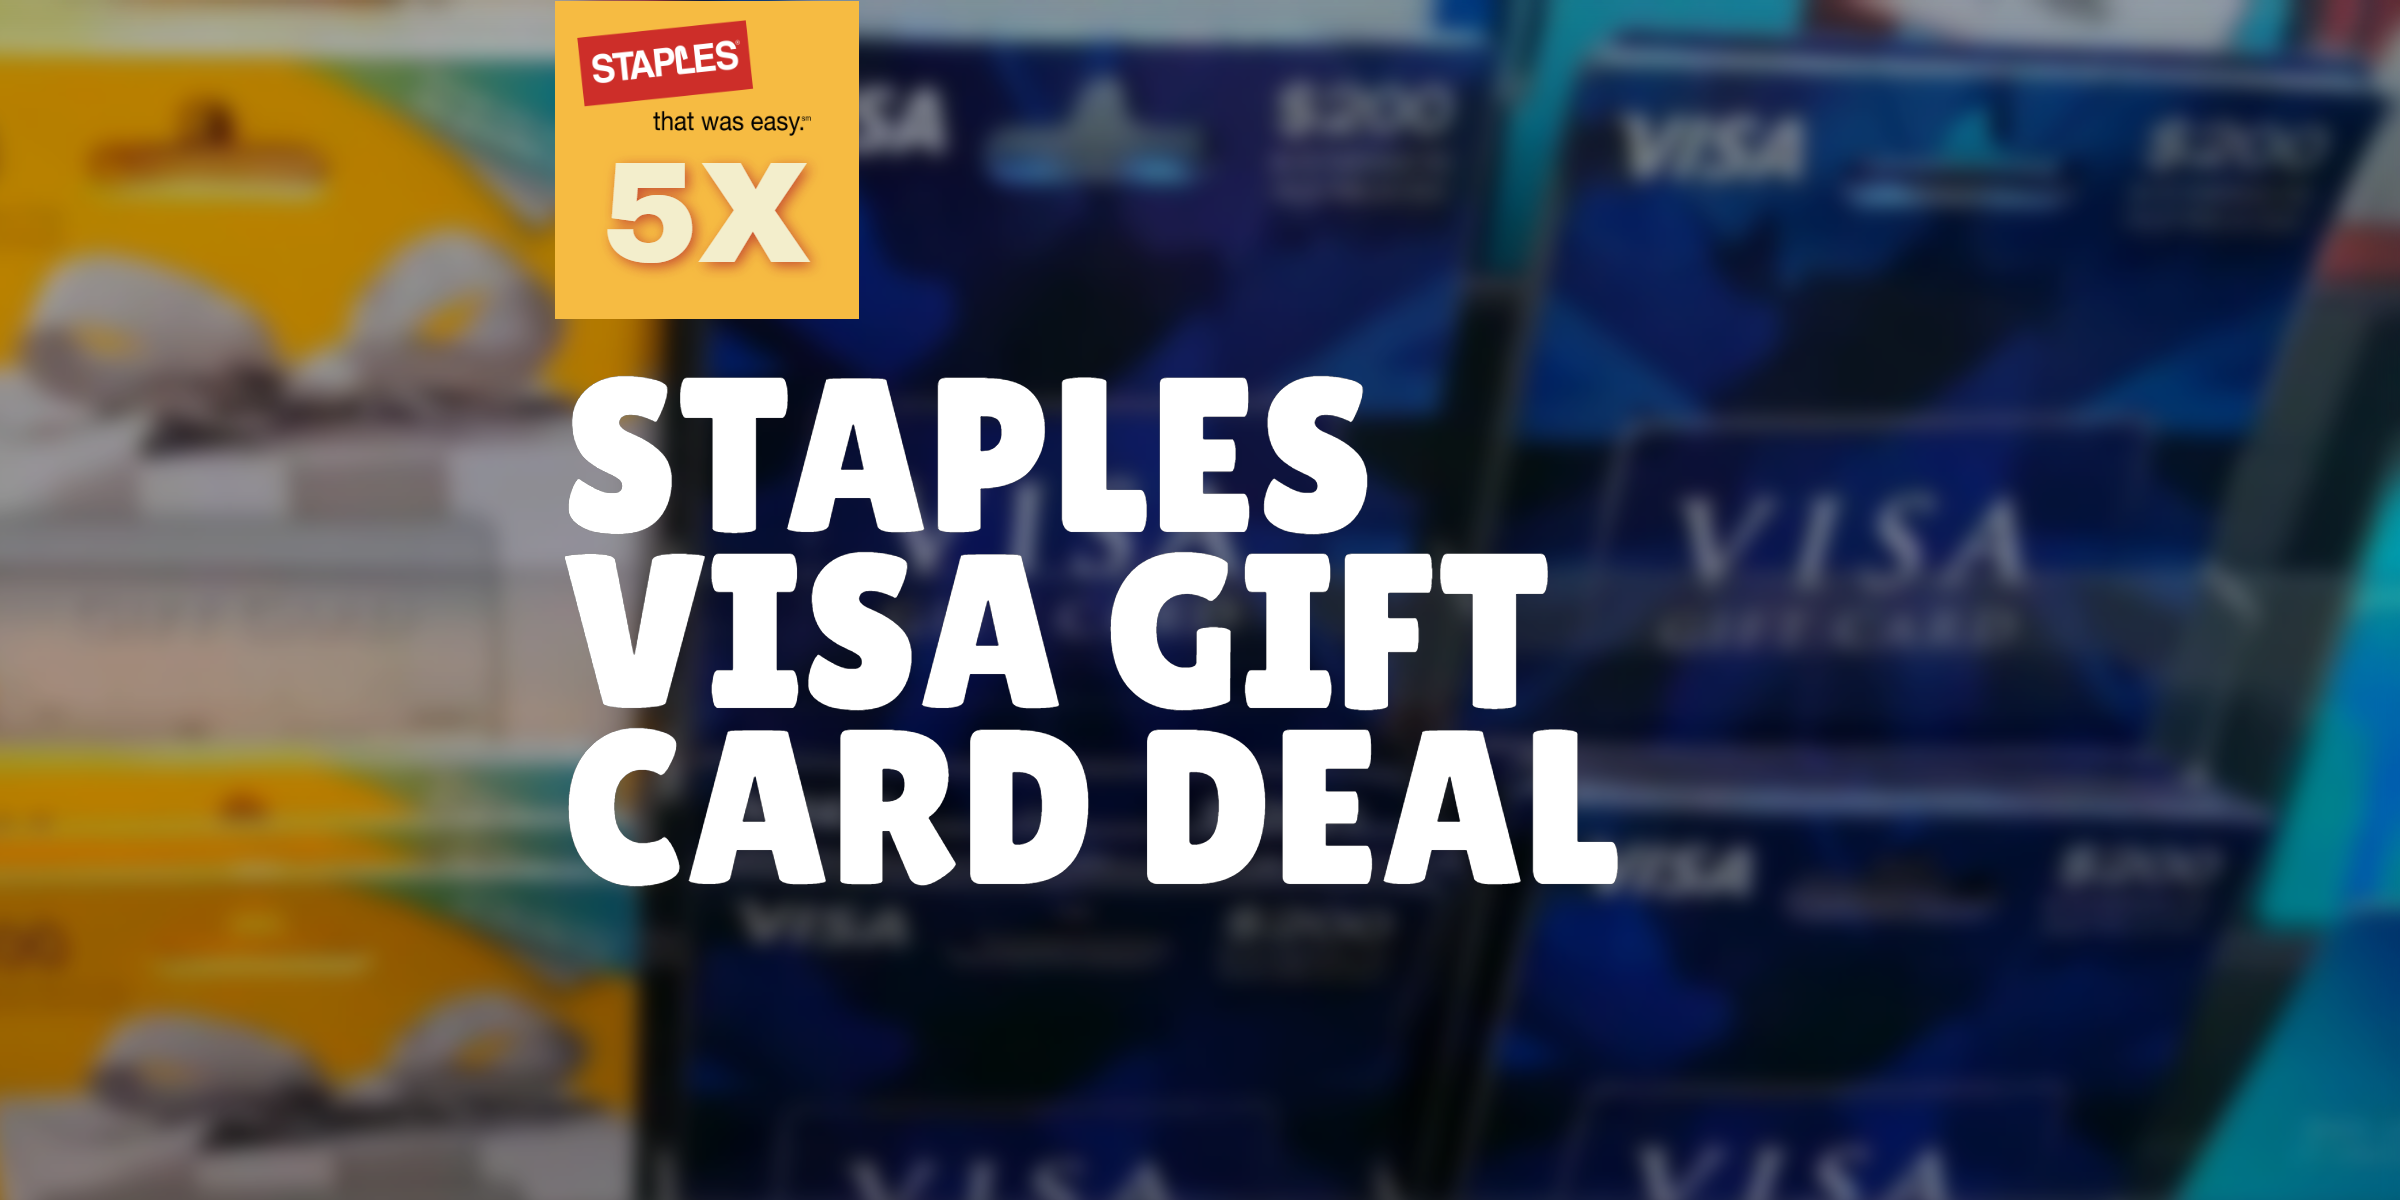 Staples Visa Gift Card Deal